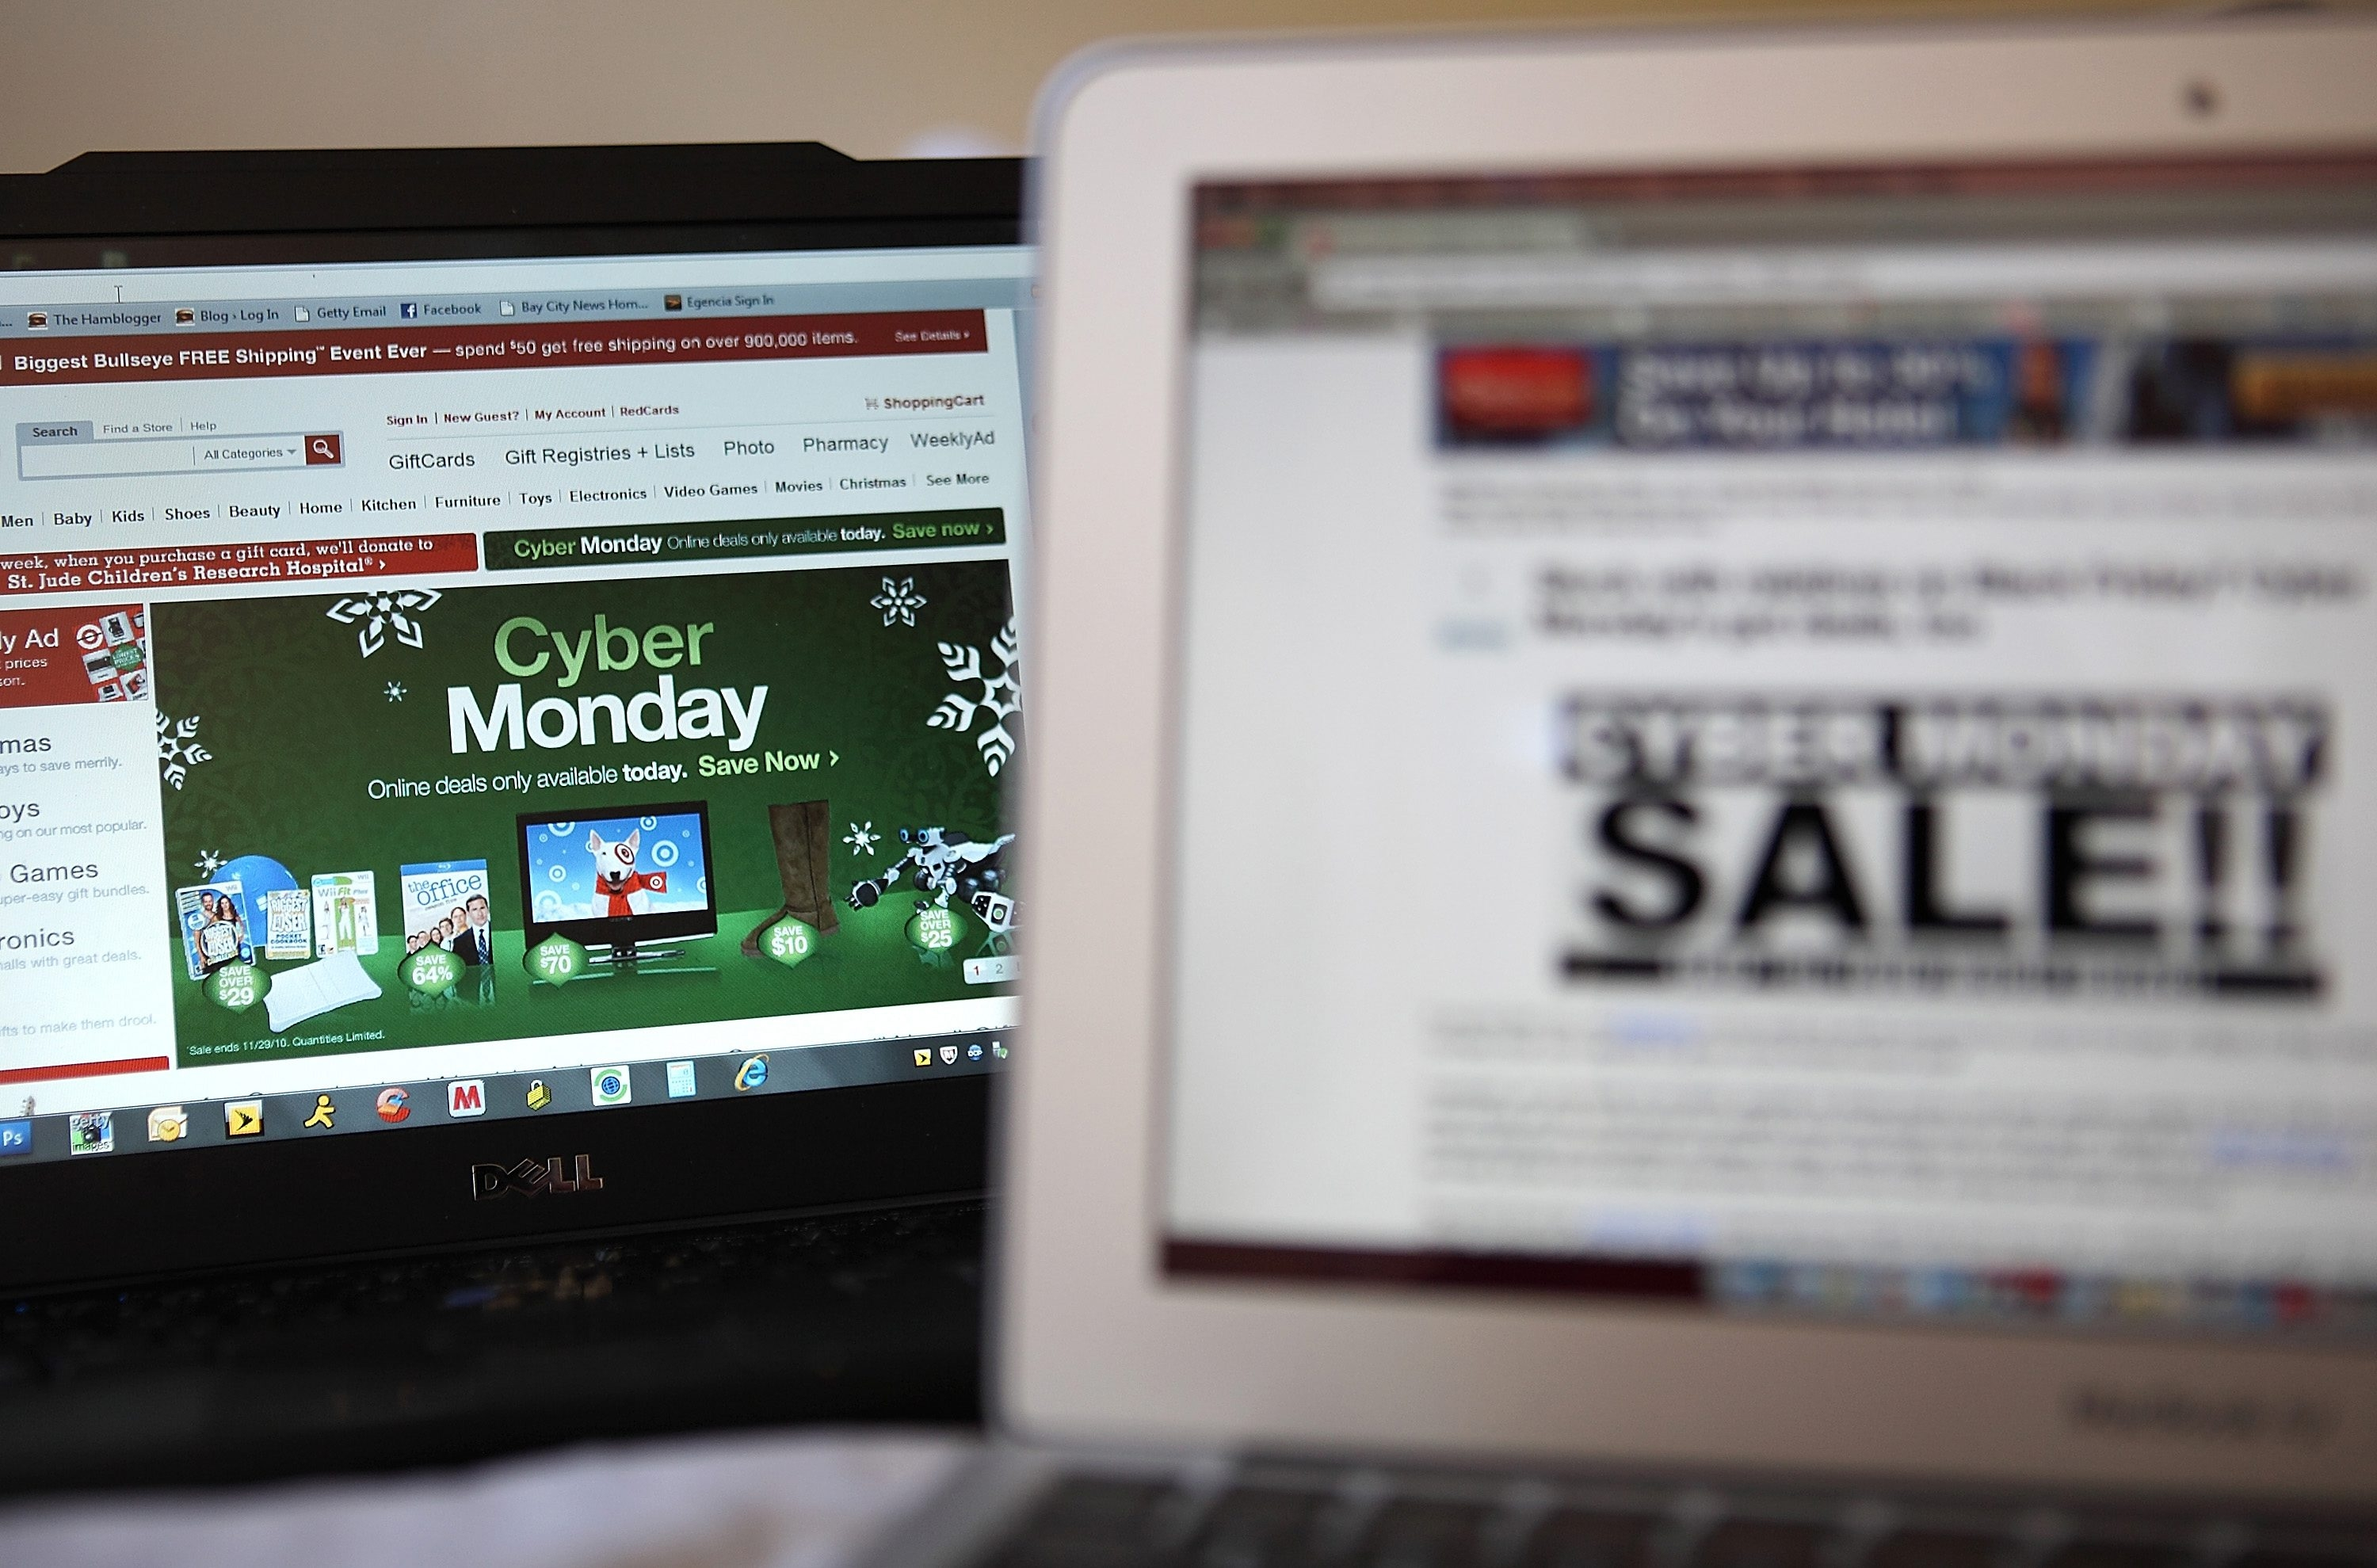 Following Black Friday, online retailers are rolling out deep discounts in hopes of luring people who are returning to work into making online purchases on what is now referred to as Cyber Monday.